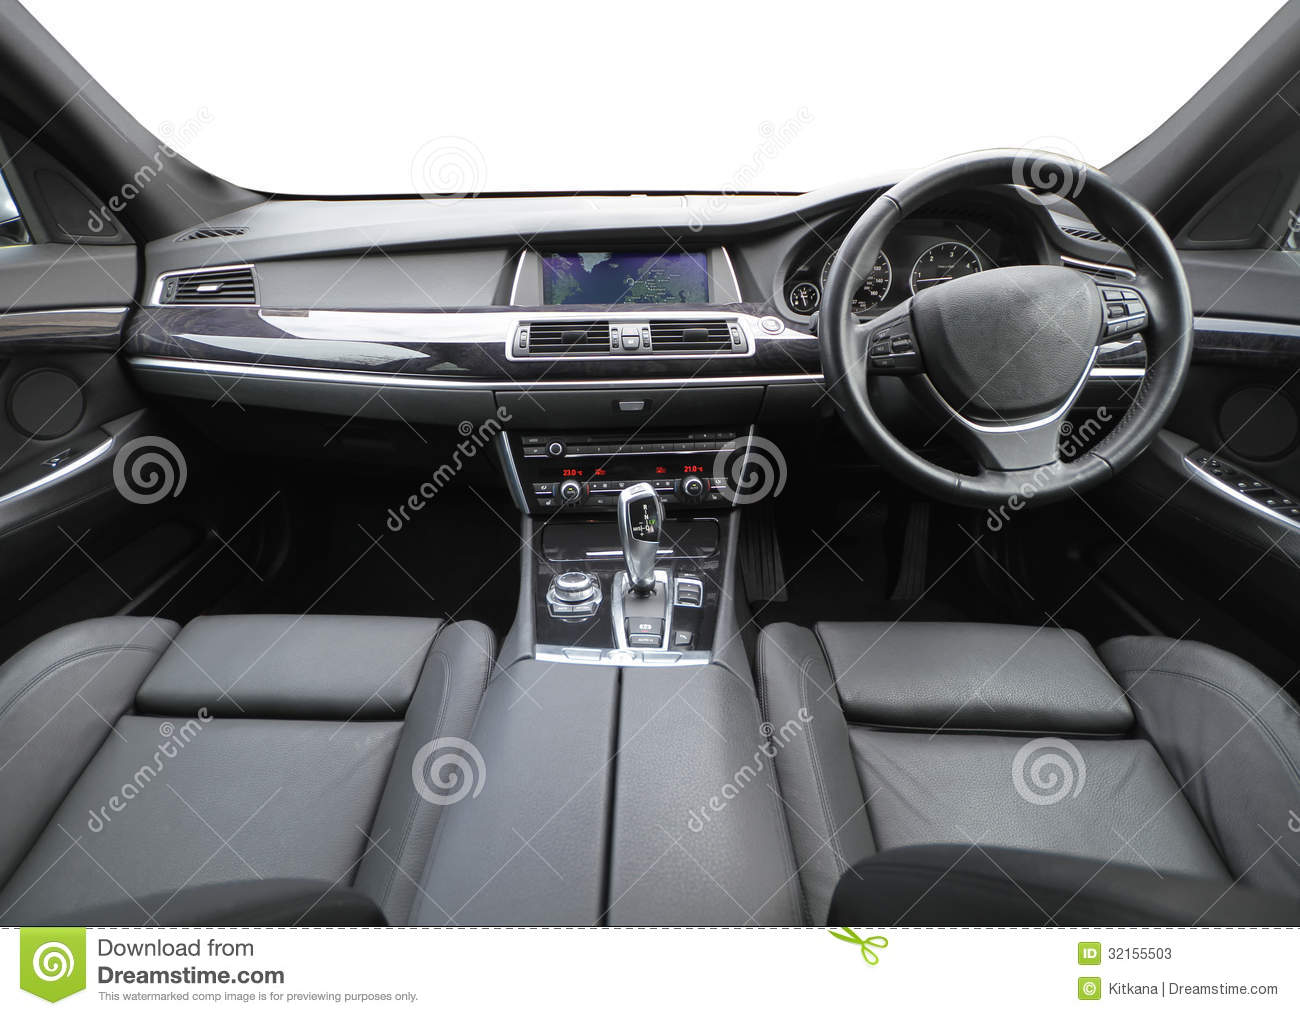 inside a car stock image image of handbrake transport 32155503. Black Bedroom Furniture Sets. Home Design Ideas